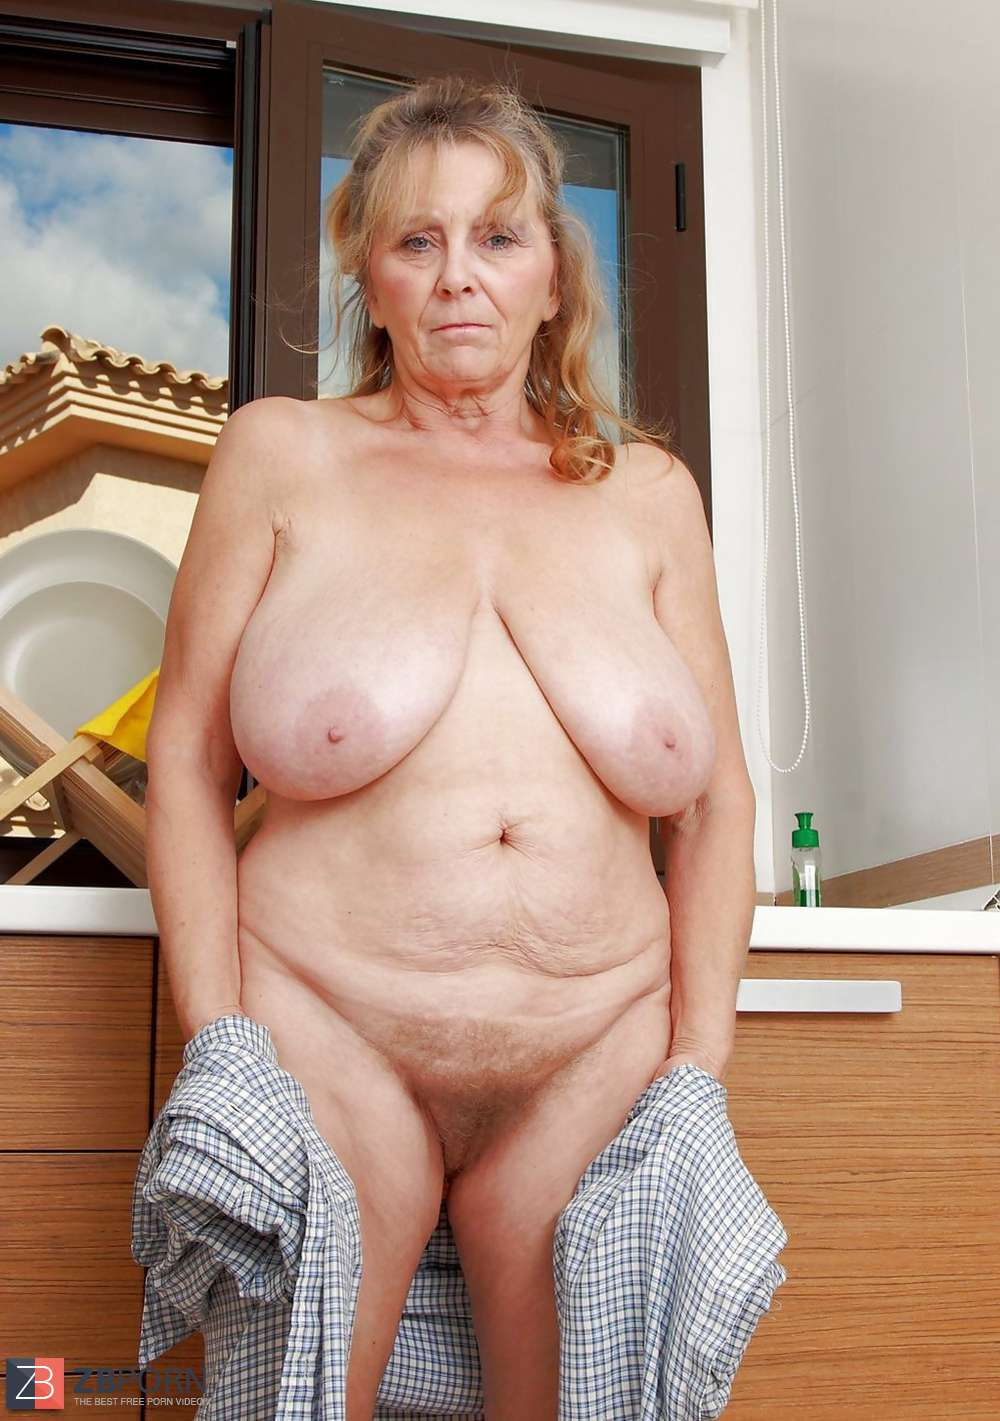 Old nude pic gallery